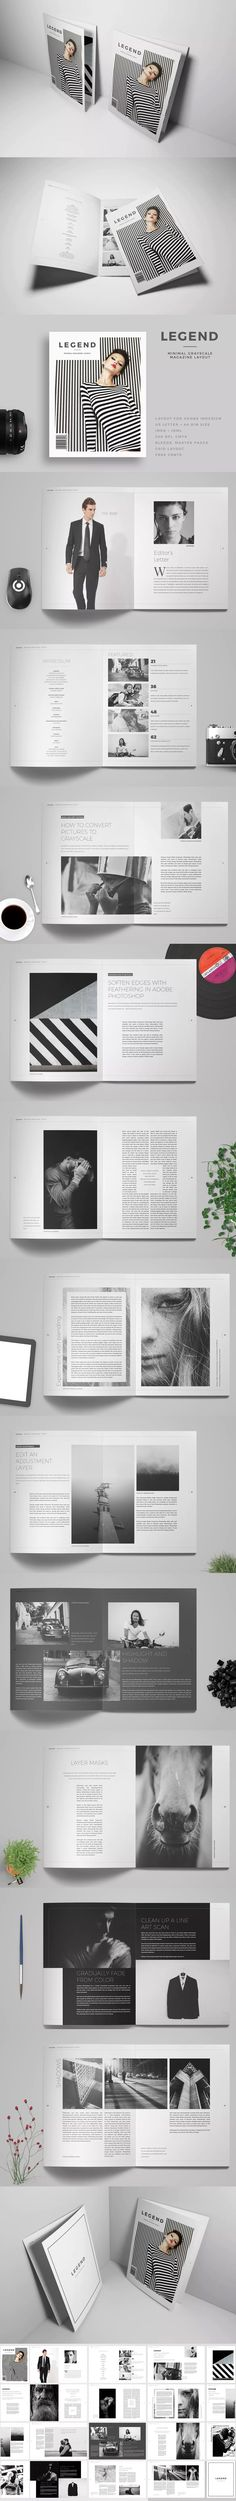 L E G E N D - Minimal Magazine Template InDesign INDD A4 and US Letter Size